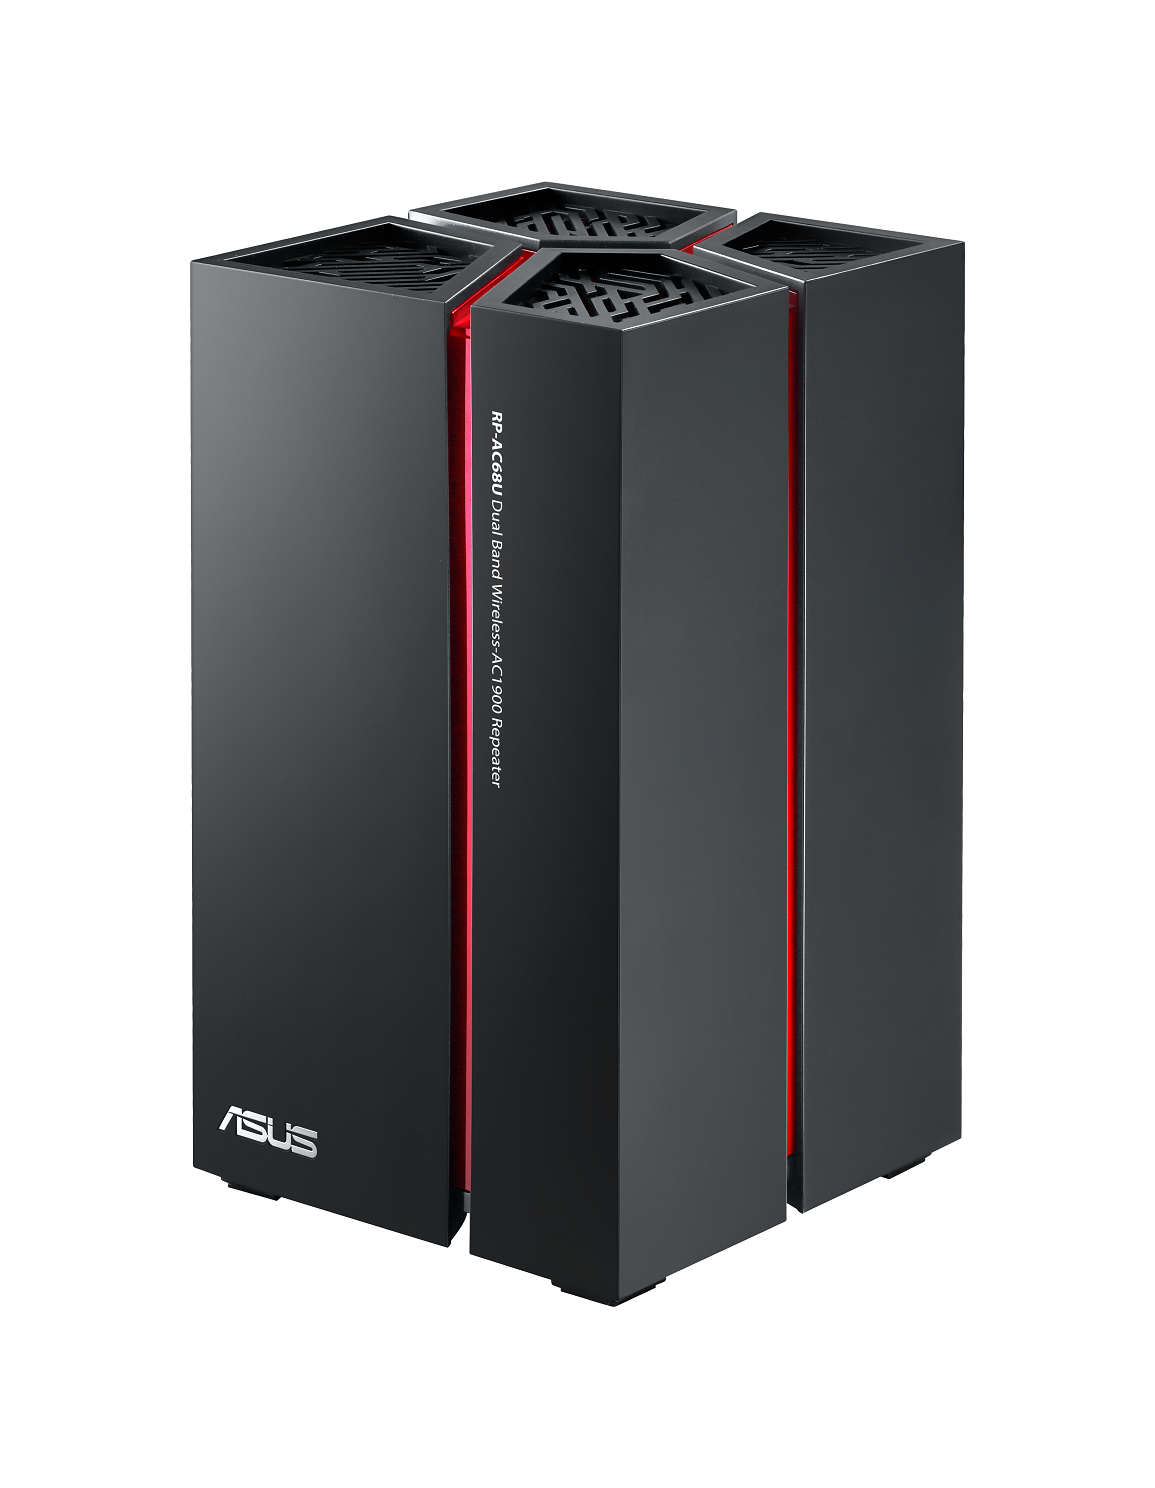 ASUS's new RP-AC68U wireless repeater that supports a combined speed of up to 1900Mbps.